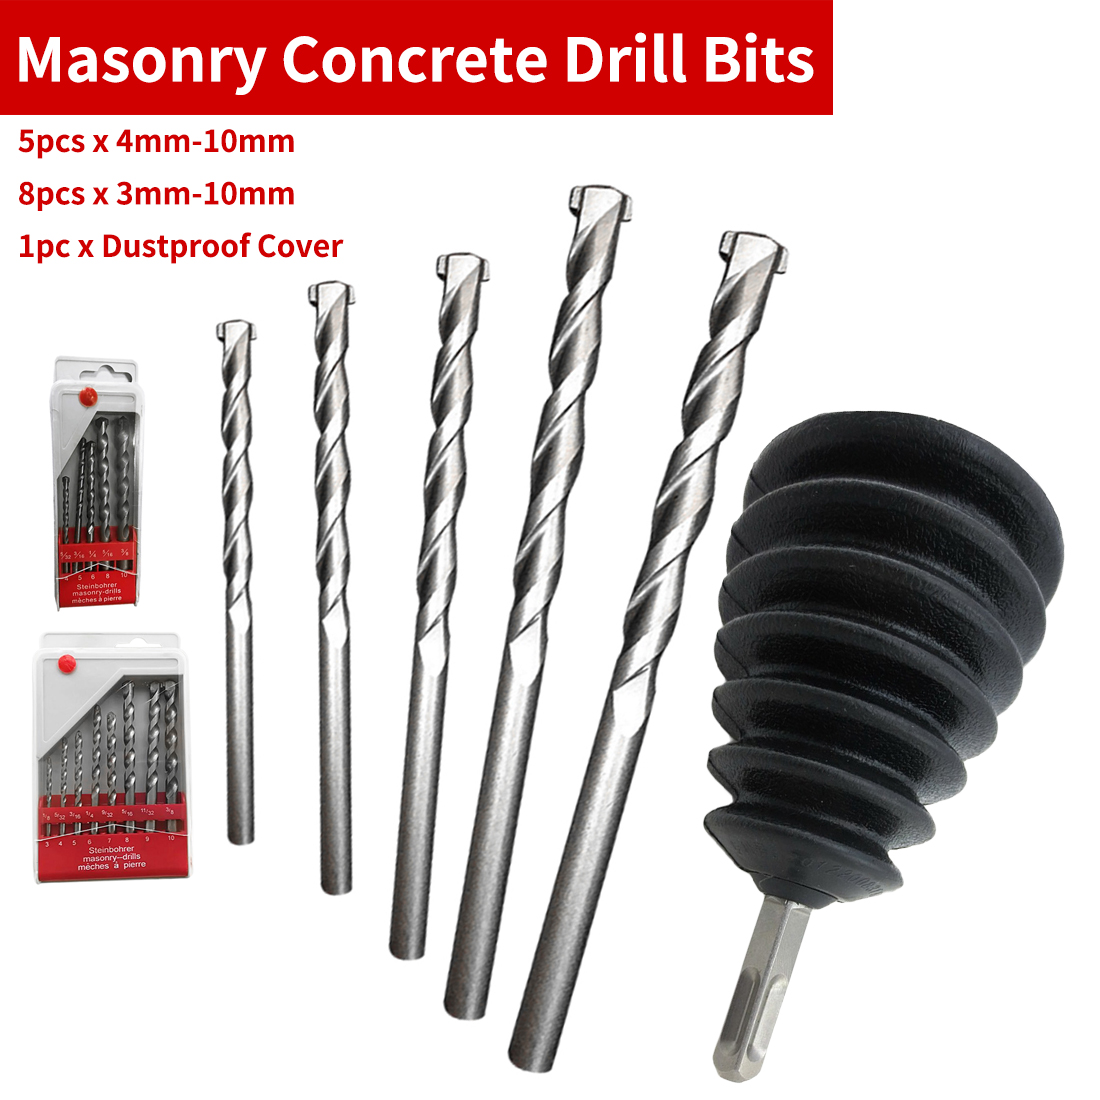 5pcs/8pcs Drill Bit Tool Set Nickel Plating Round Shank Impact For Wall Cement Alloy Concrete Marble 3mm-10mm/4mm-10mm